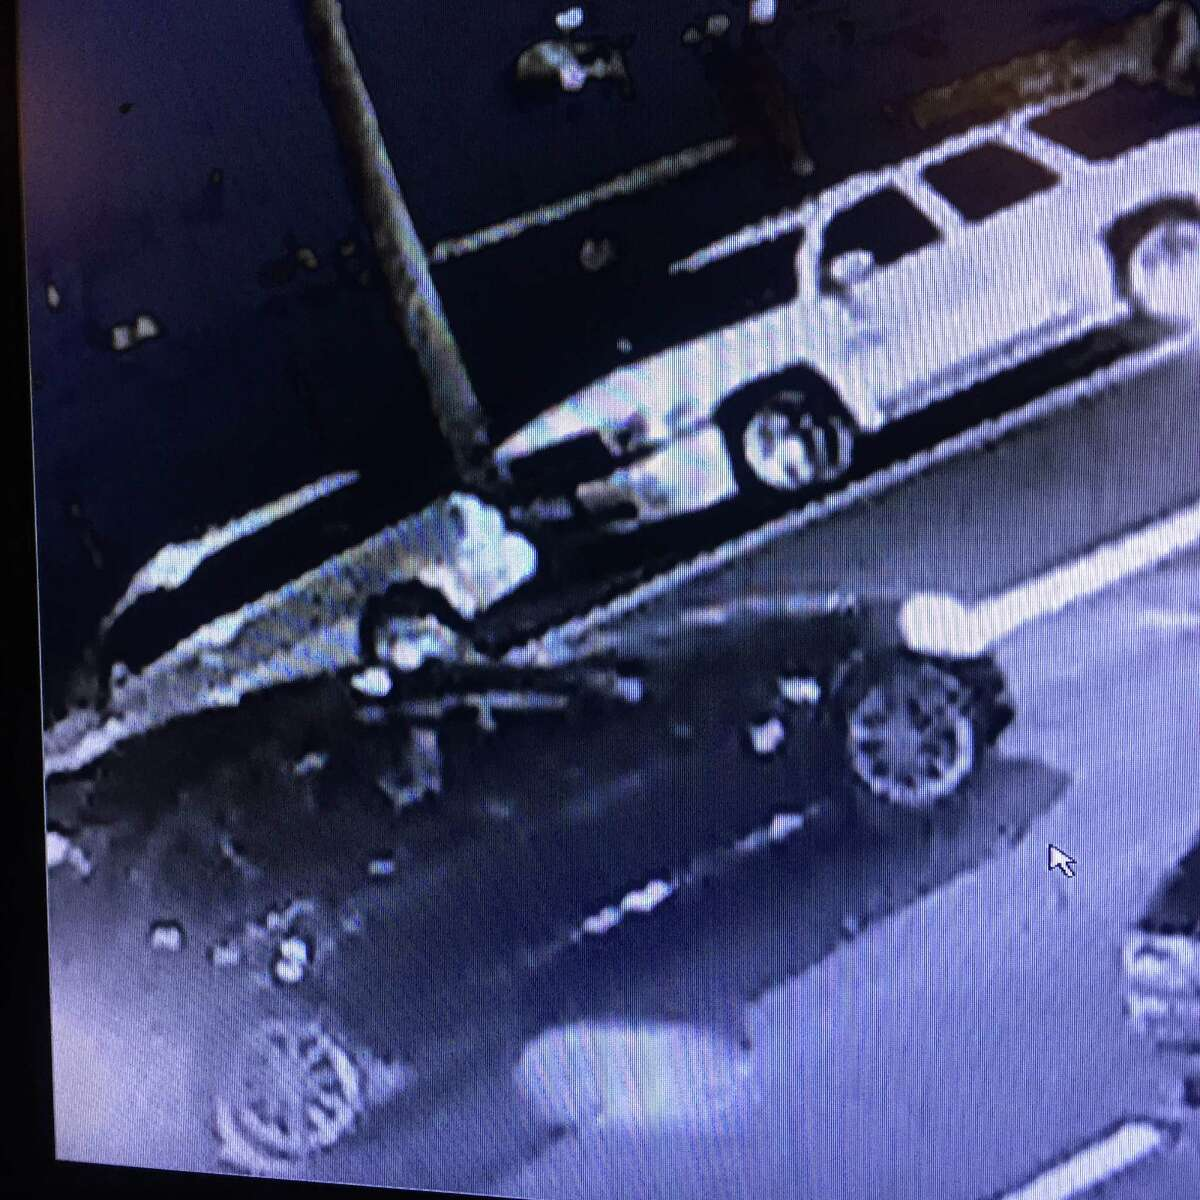 Shelton police are asking for the public's help to locate the driver of a black car seen near a hit and run accident on Aug. 14, 2015. A bicycle rider, injured in the accident, is still hospitalized.